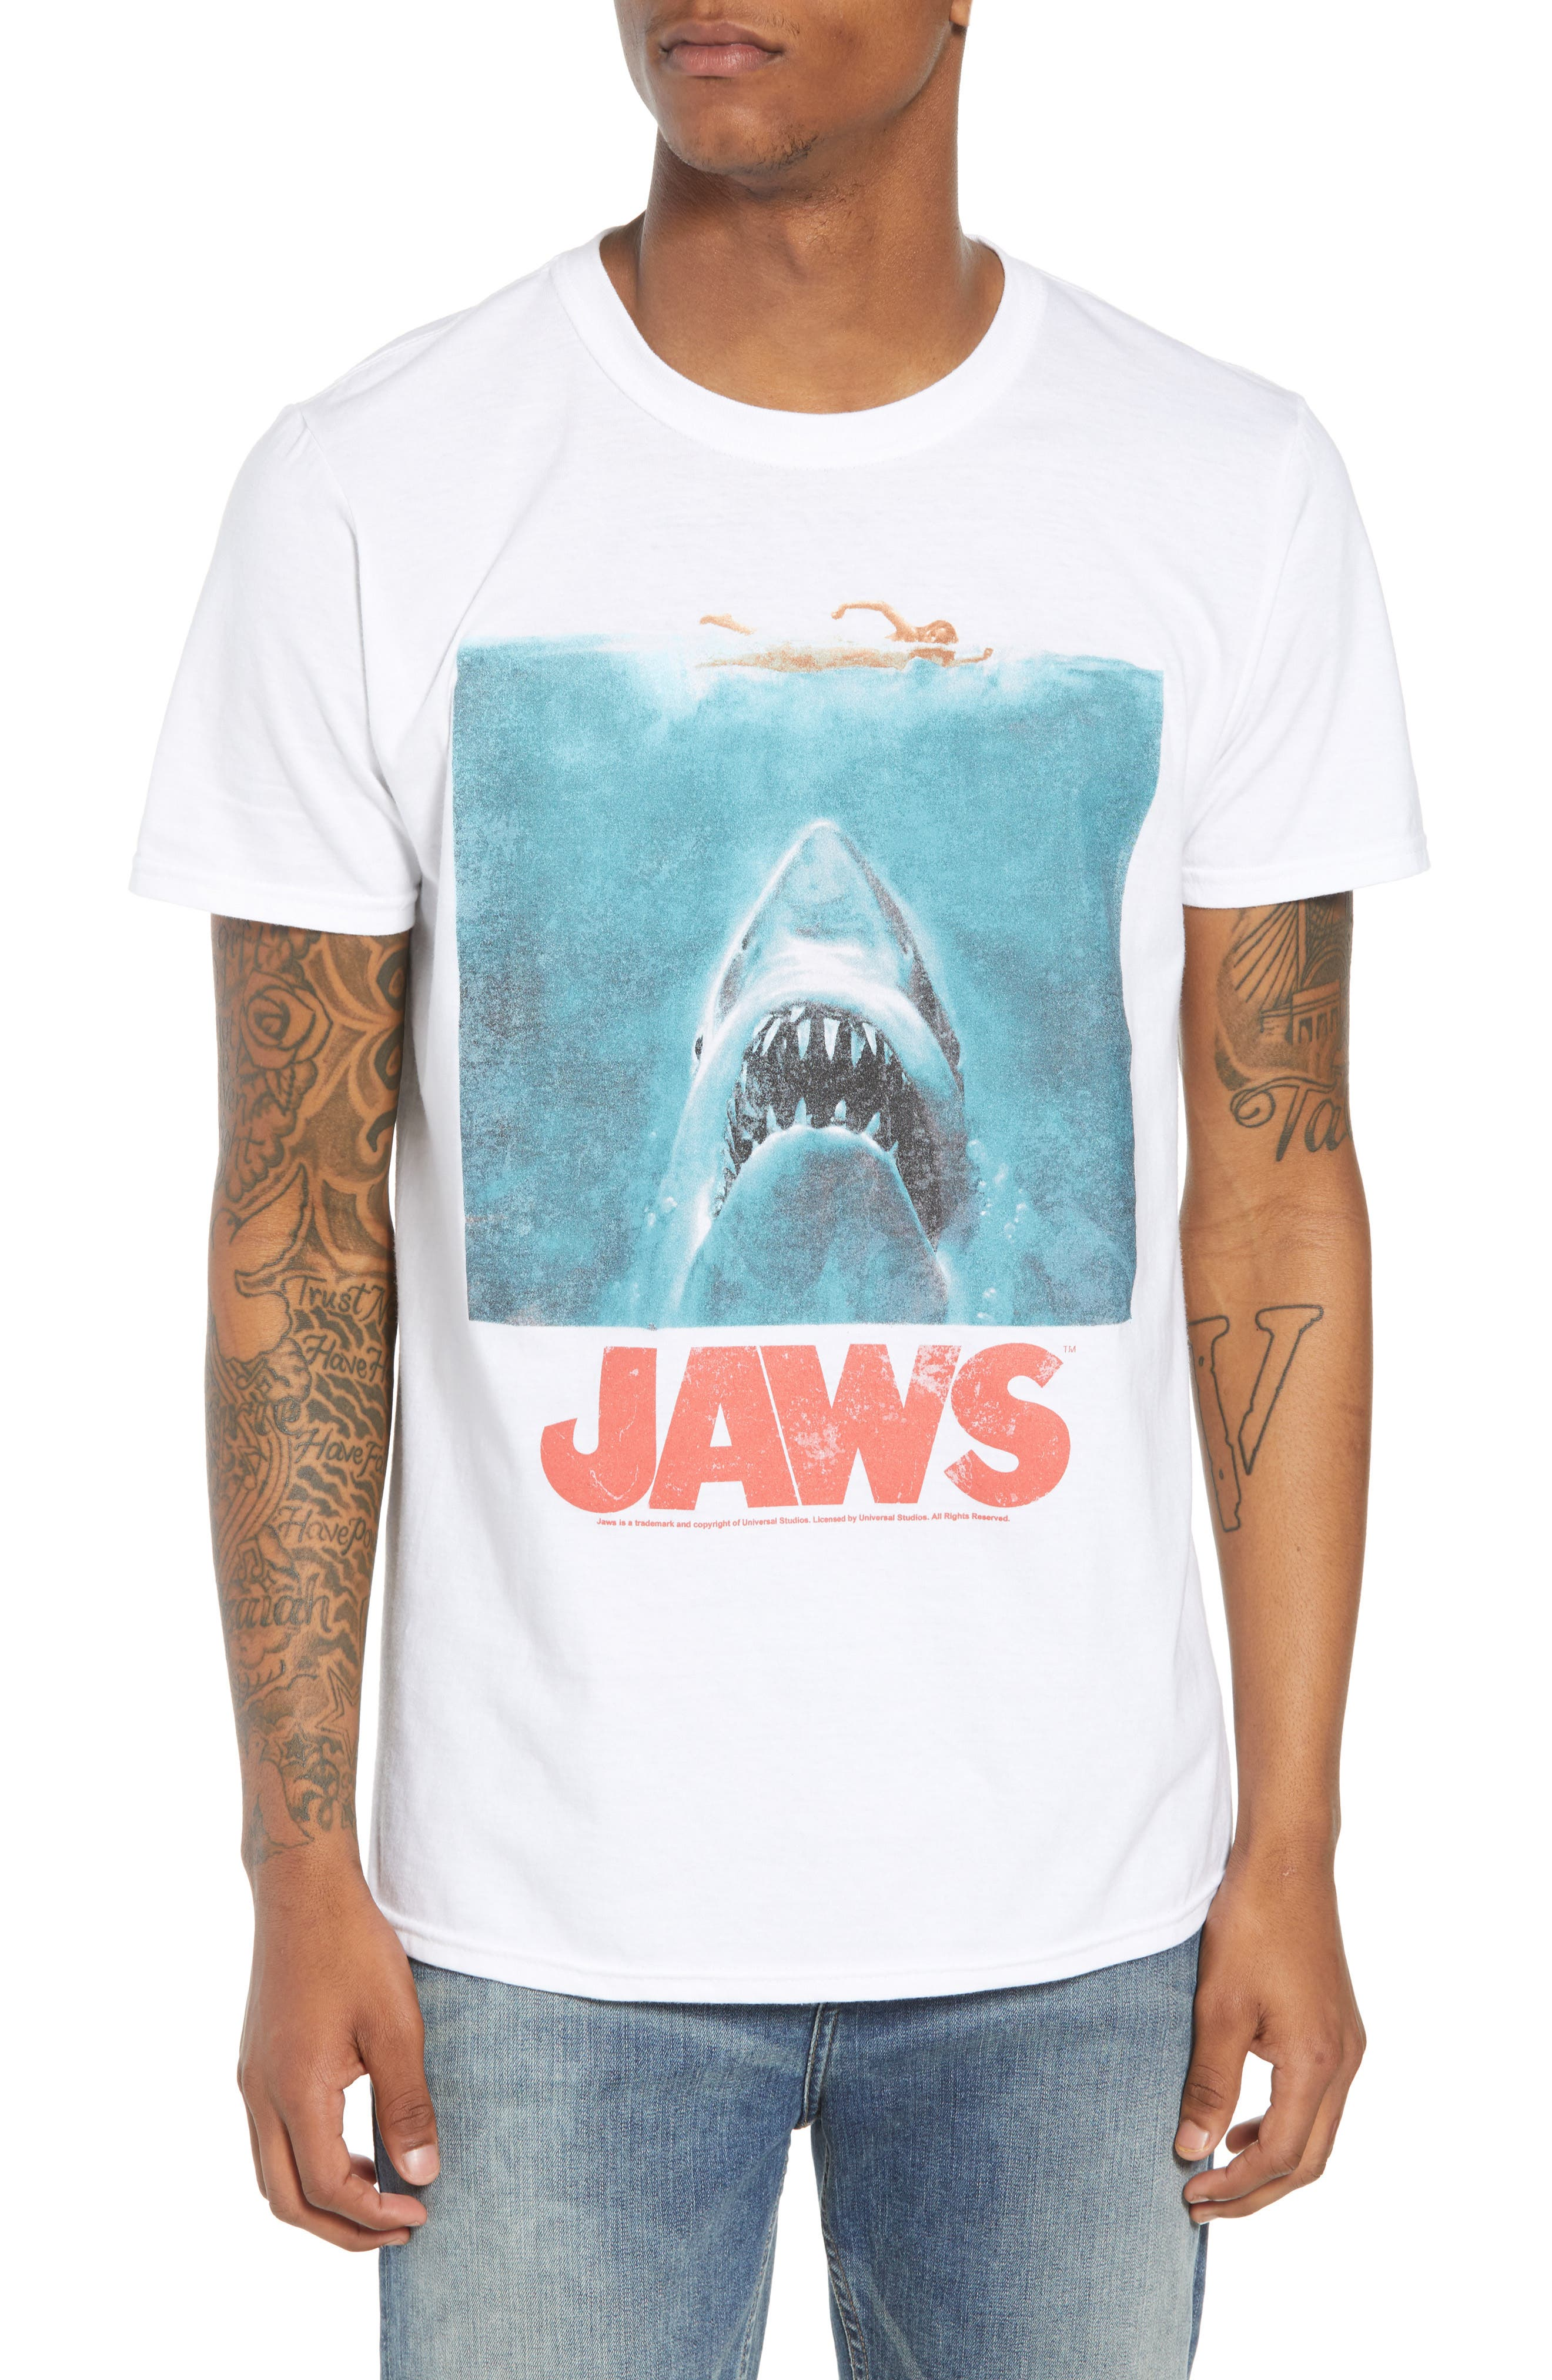 The Rail Jaws T-Shirt